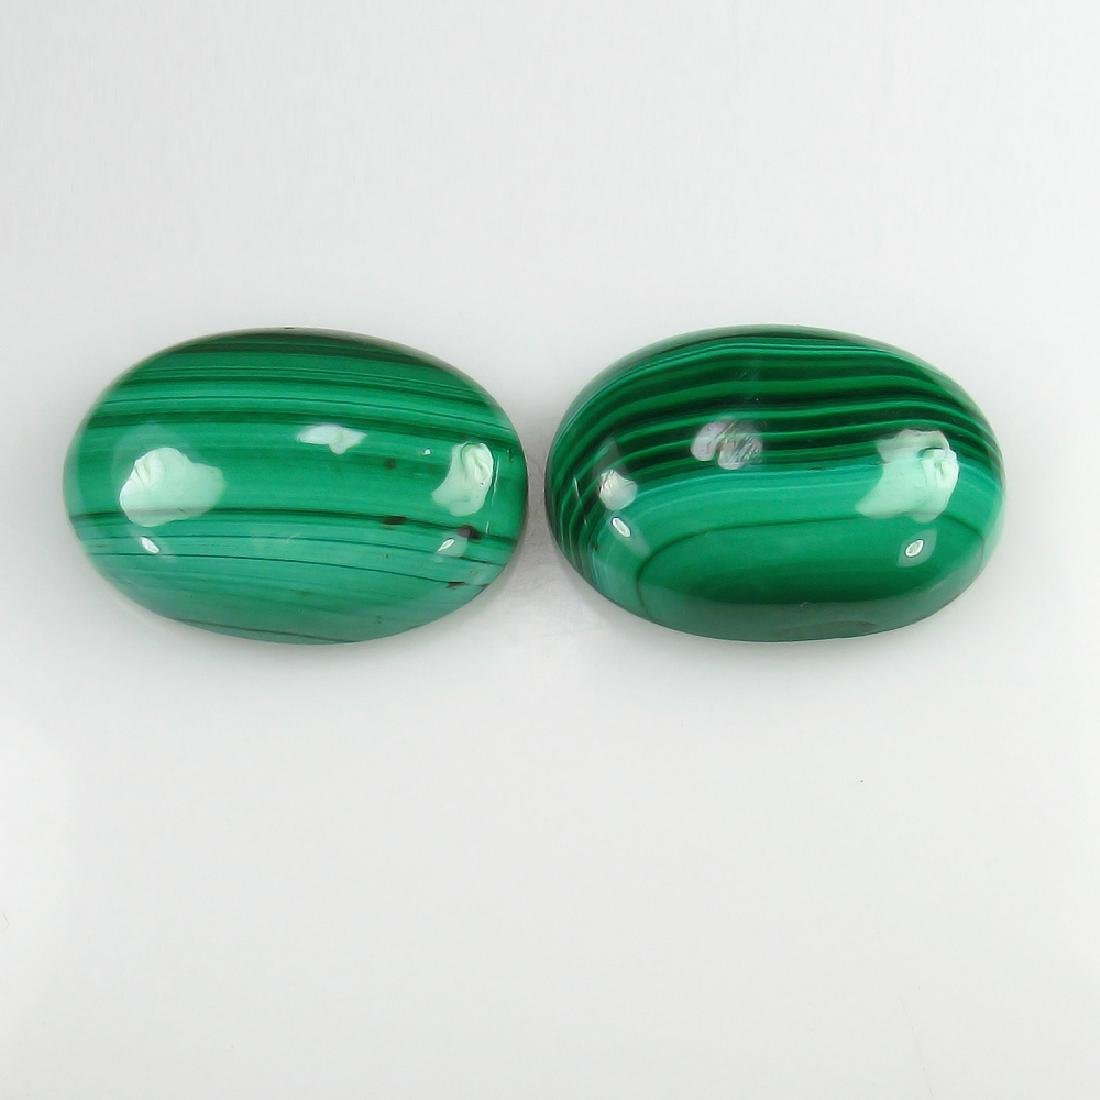 27.30 Ct Genuine Loose Malachite 18X13 mm Oval Matching